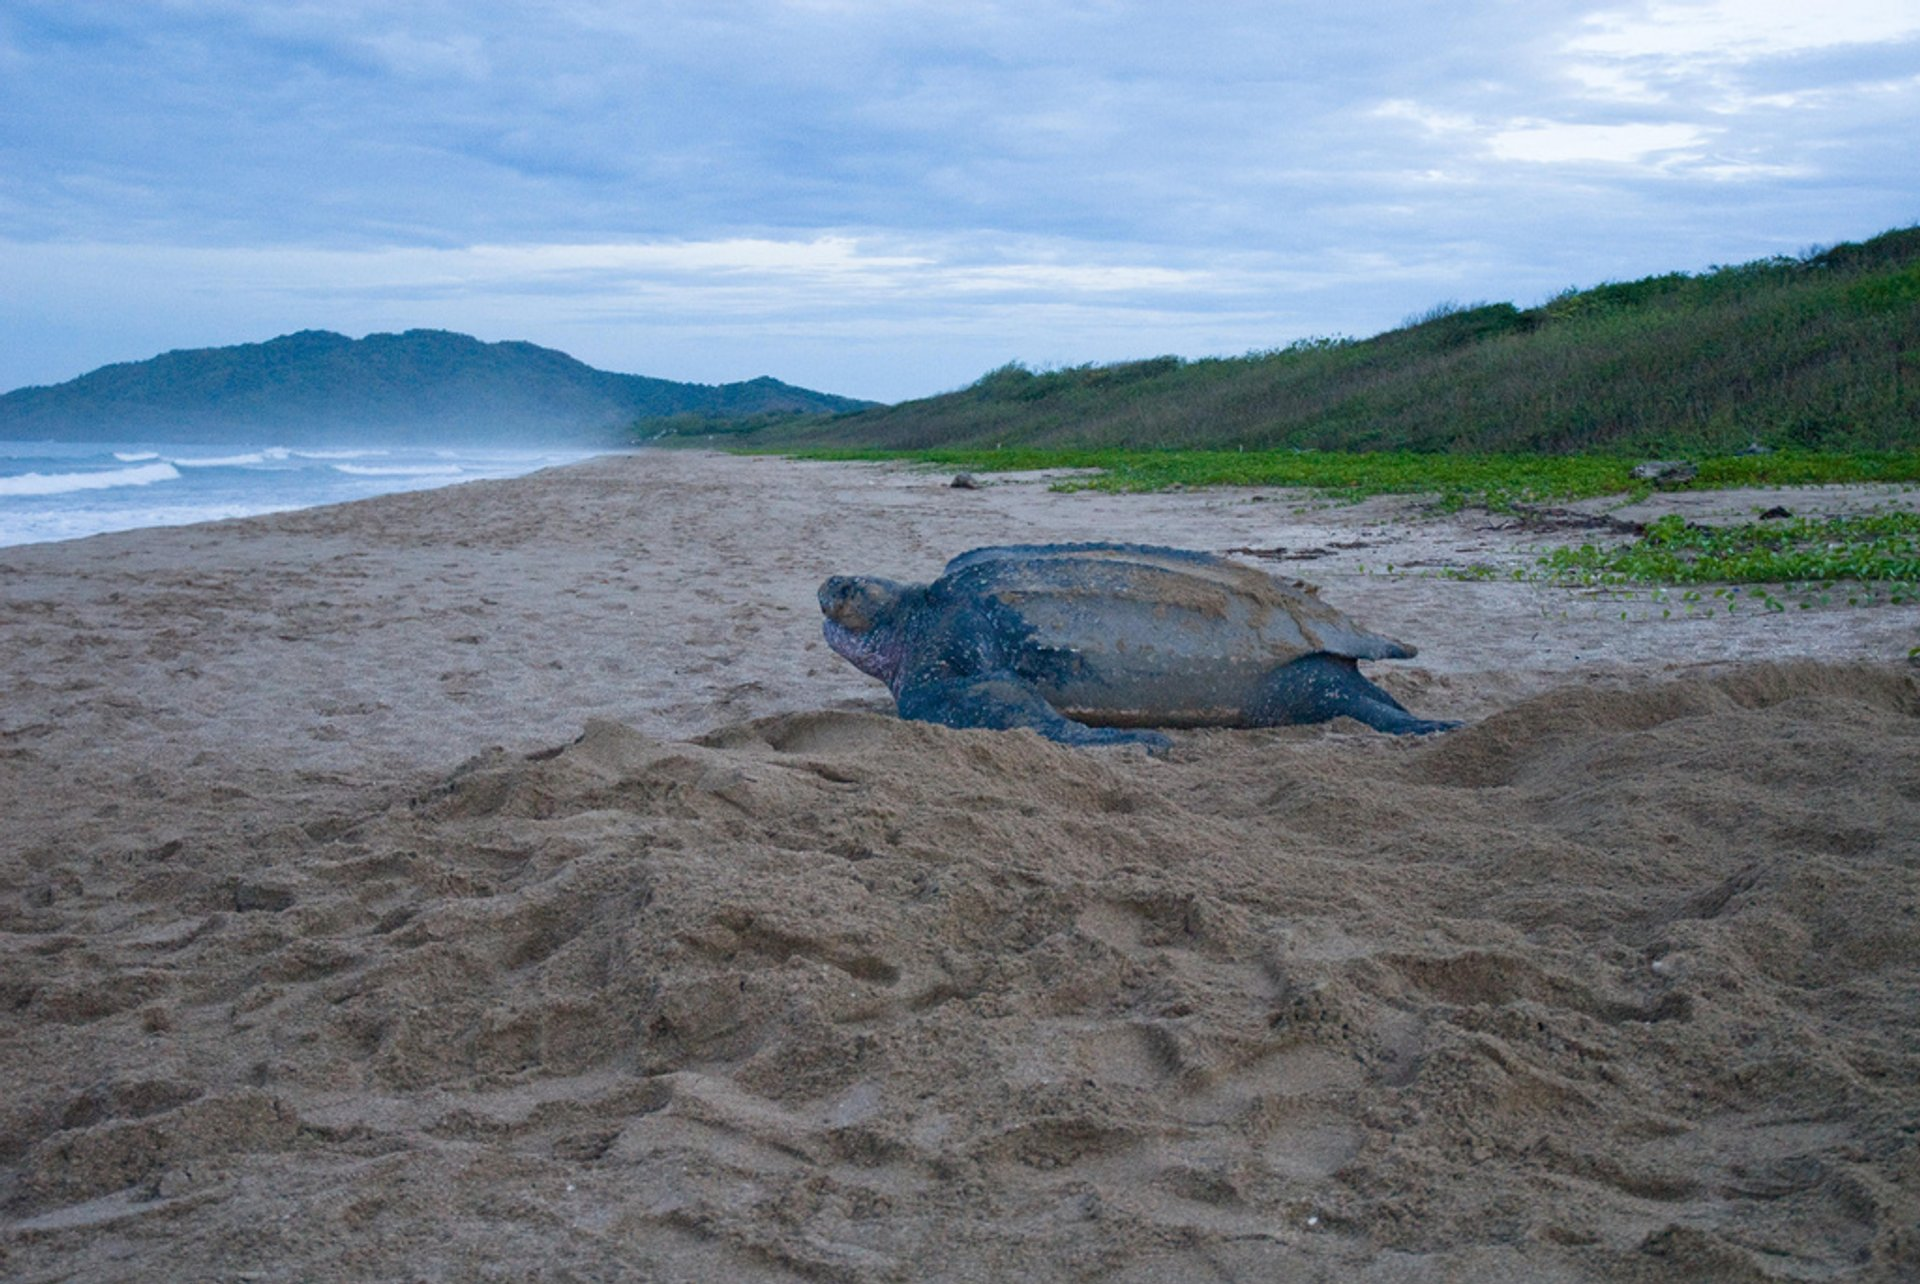 Leatherback Turtles on the Pacific in Costa Rica 2020 - Best Time